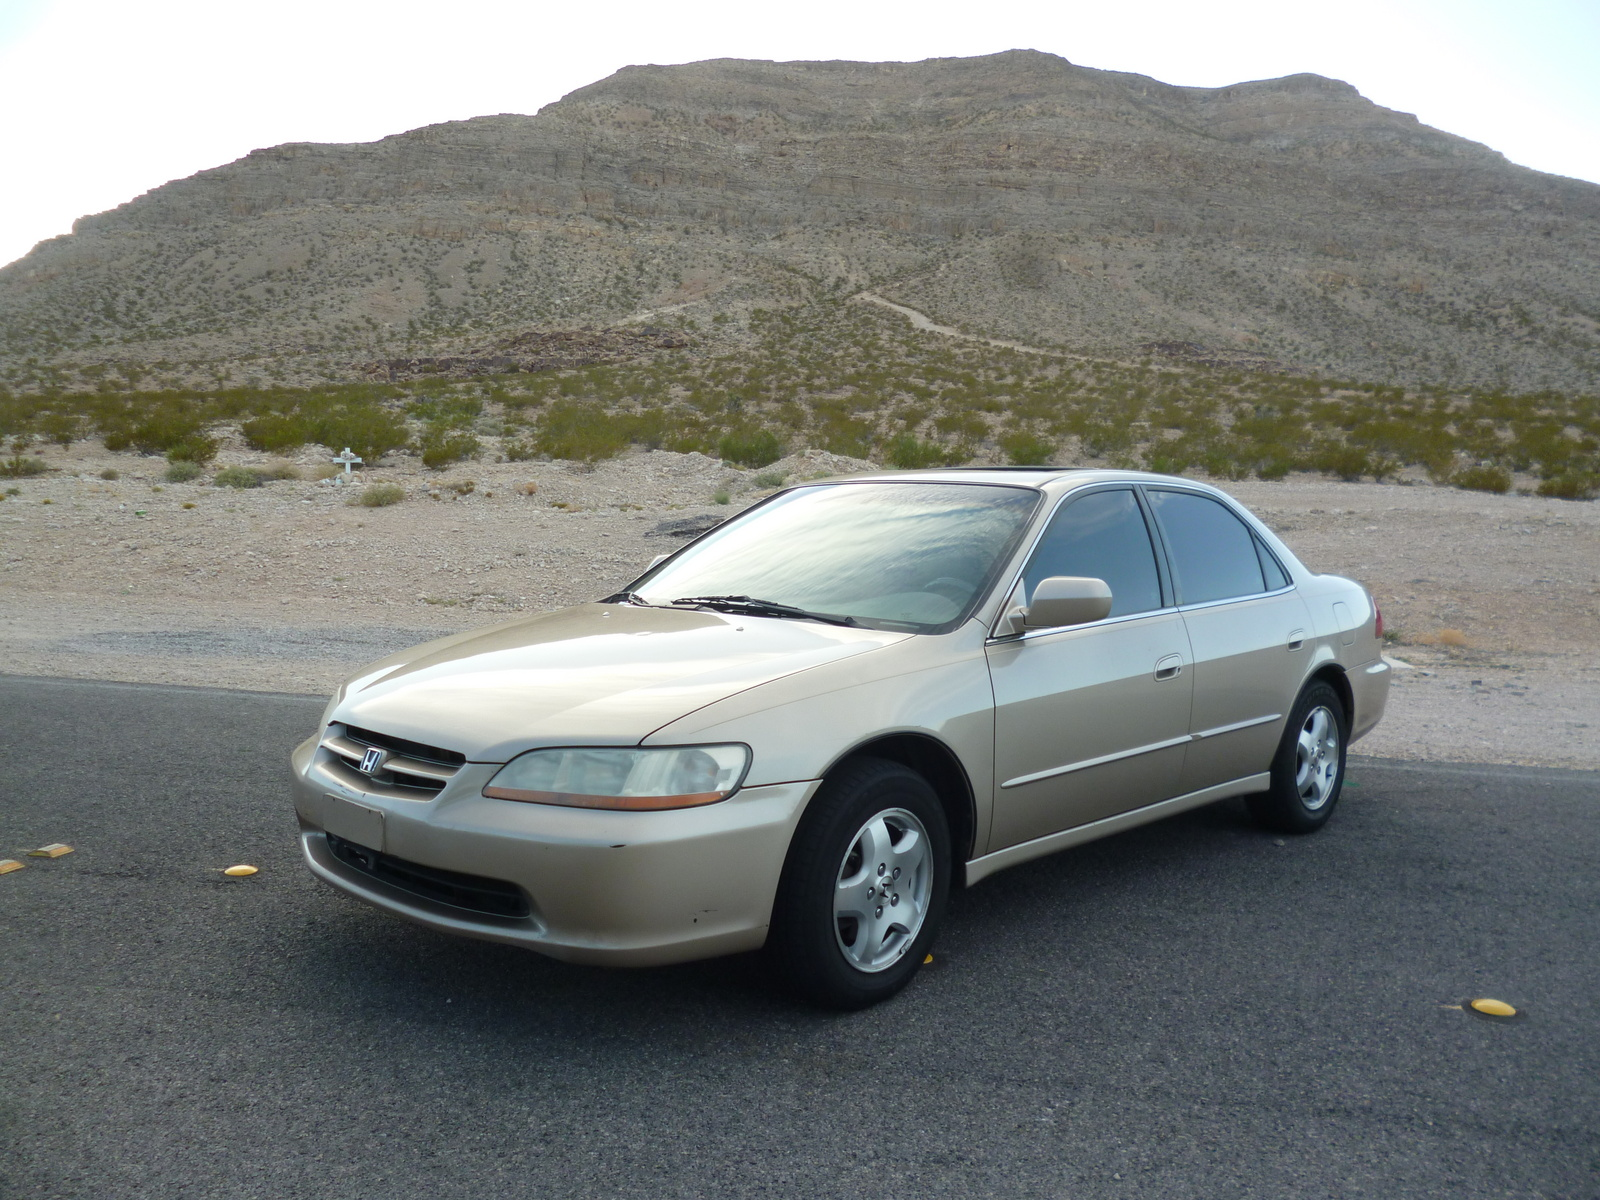 2000 Honda Accord EX V6 Coupe picture